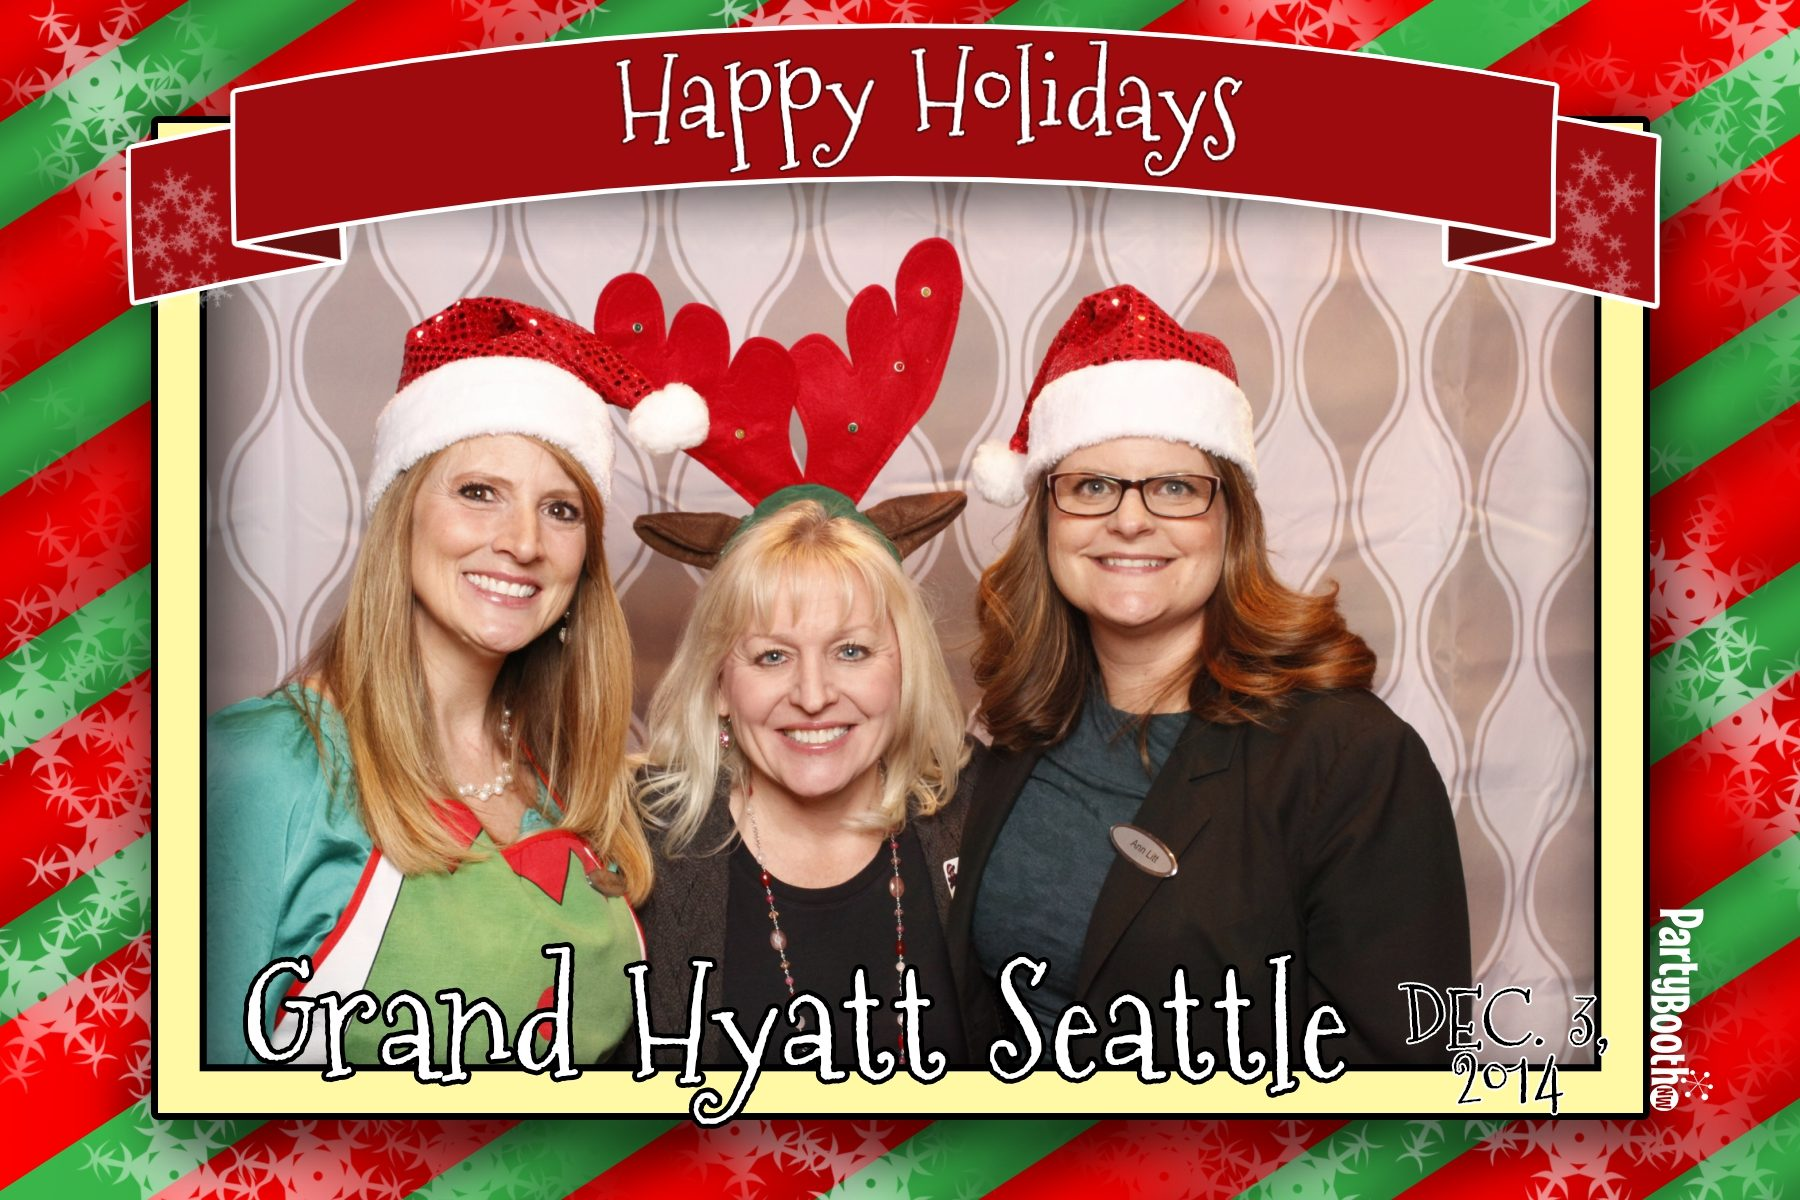 Celebrating the holidays at the Grand Hyatt Seattle with Build-a-Bear Workshop - Tonight We PartyBooth! Seattle Photo Booth ©2014 PartyBoothNW.com